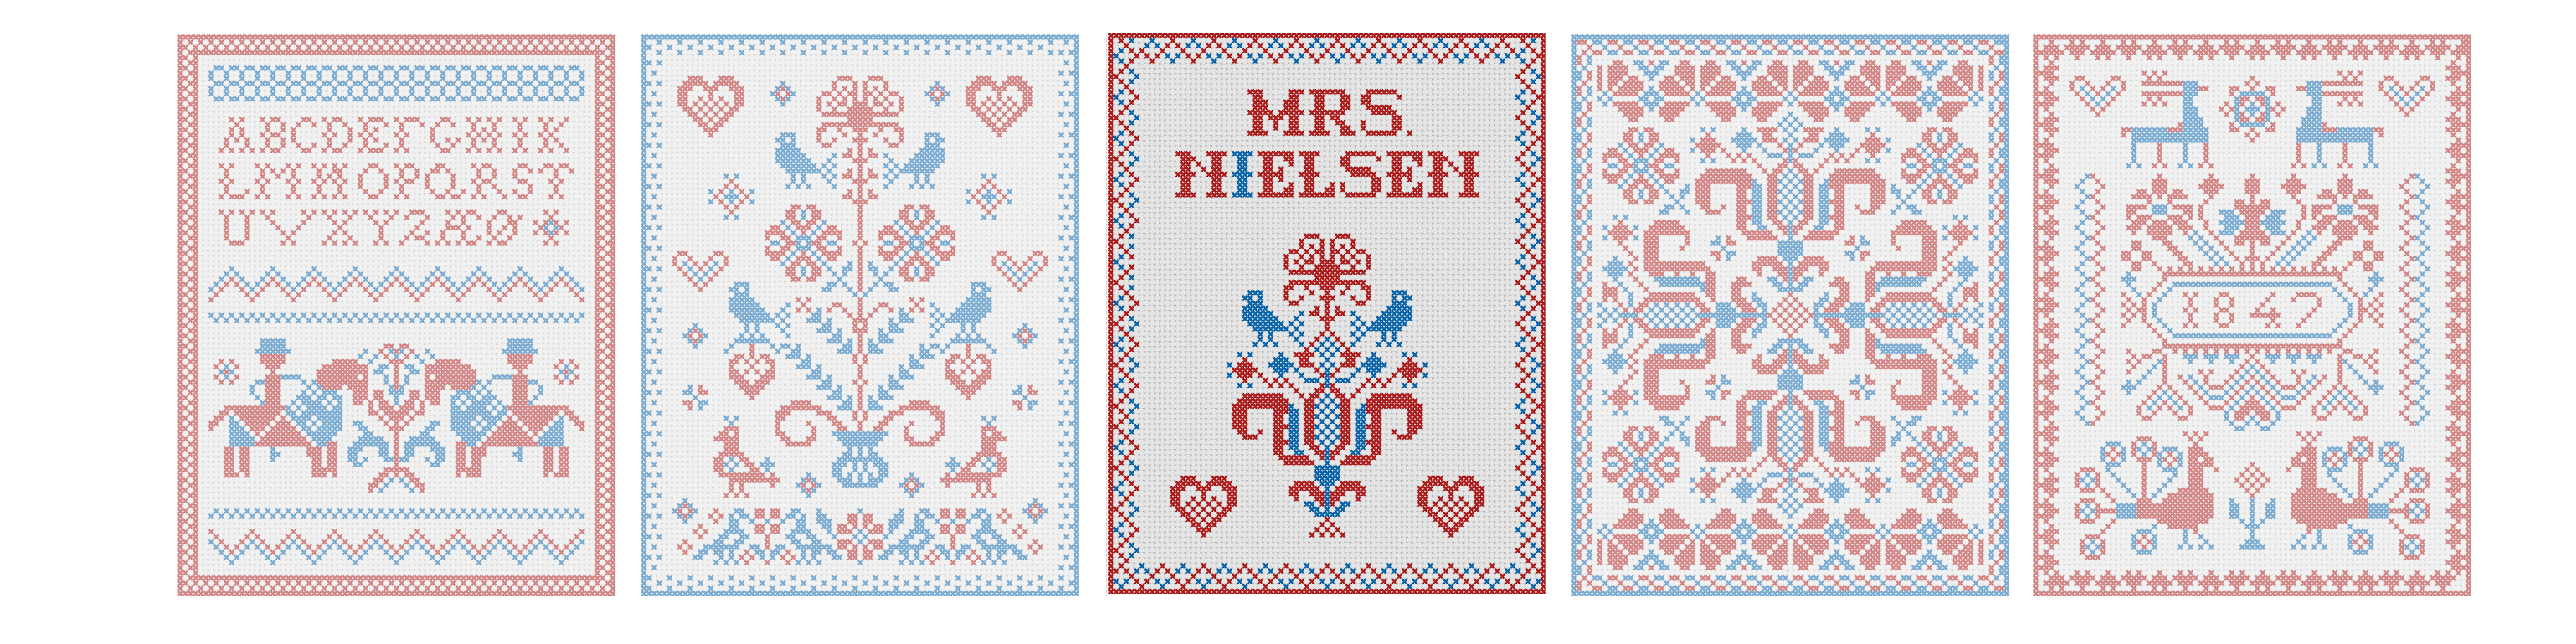 Mrs. Nielsen Embroidery